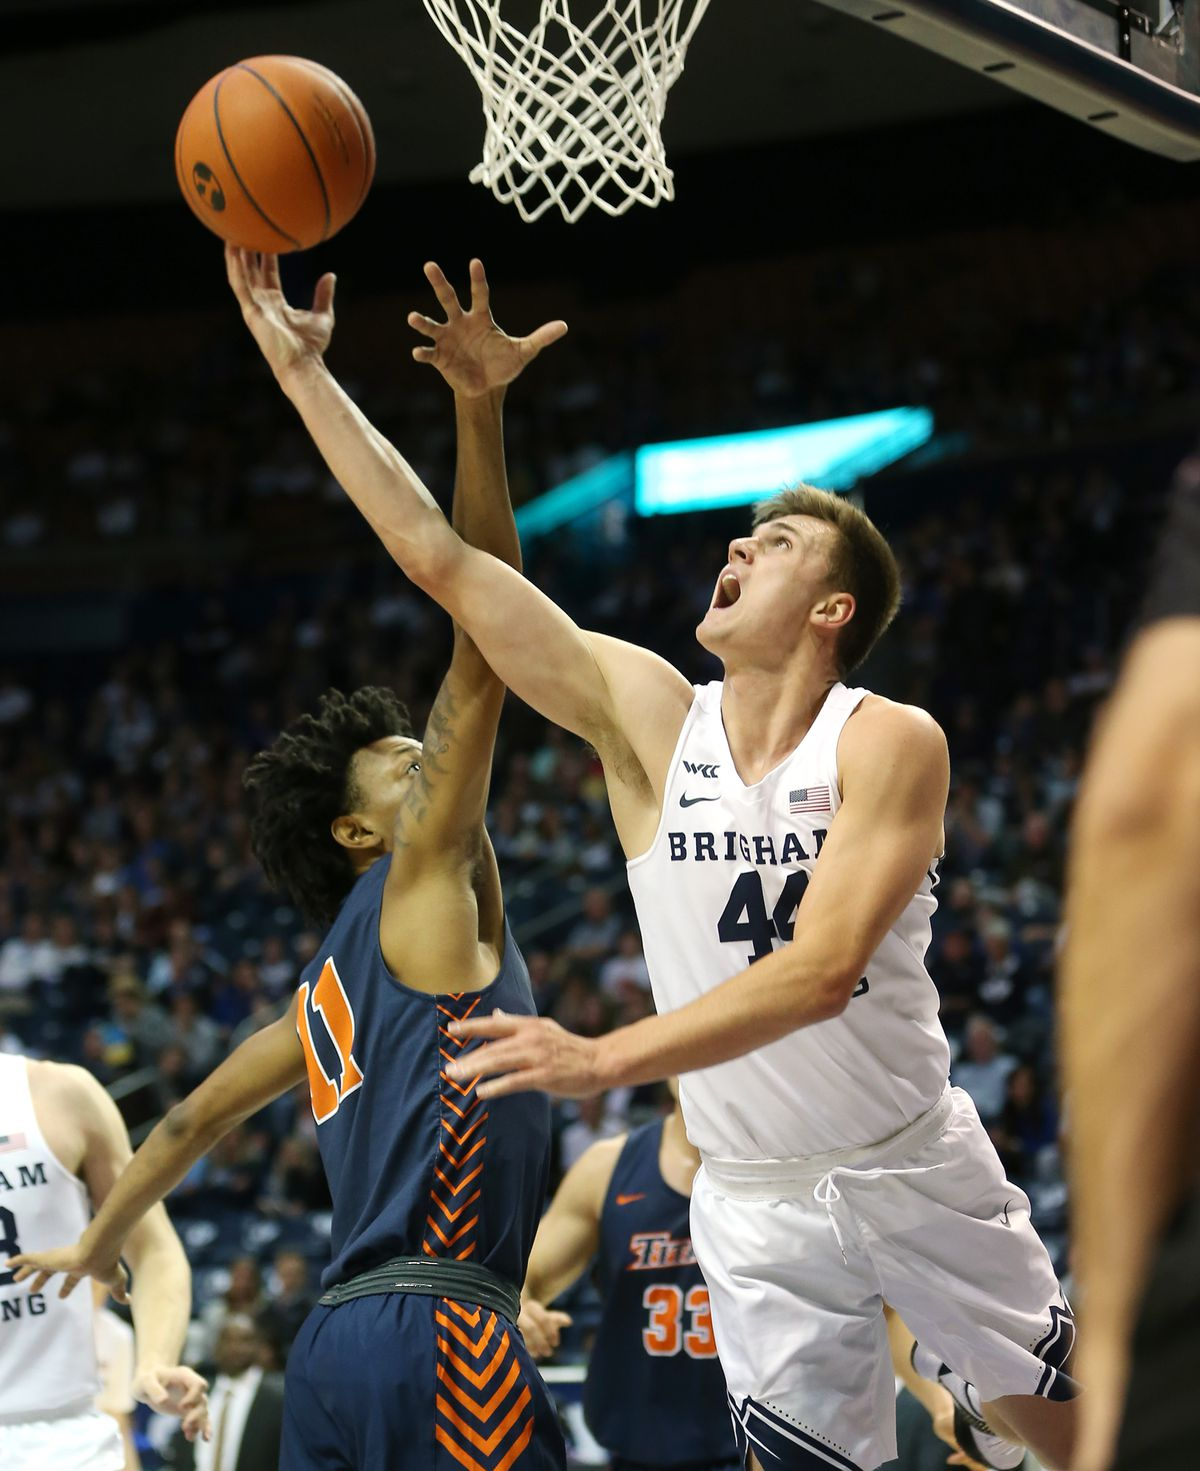 Brigham Young Cougars guard Connor Harding (44) puts up a shot over Cal State Fullerton Titans guard Wayne Arnold (11) as BYU and Cal State Fullerton play a college basketball game at the Marriott Center in Provo on Tuesday, Nov. 5, 2019.